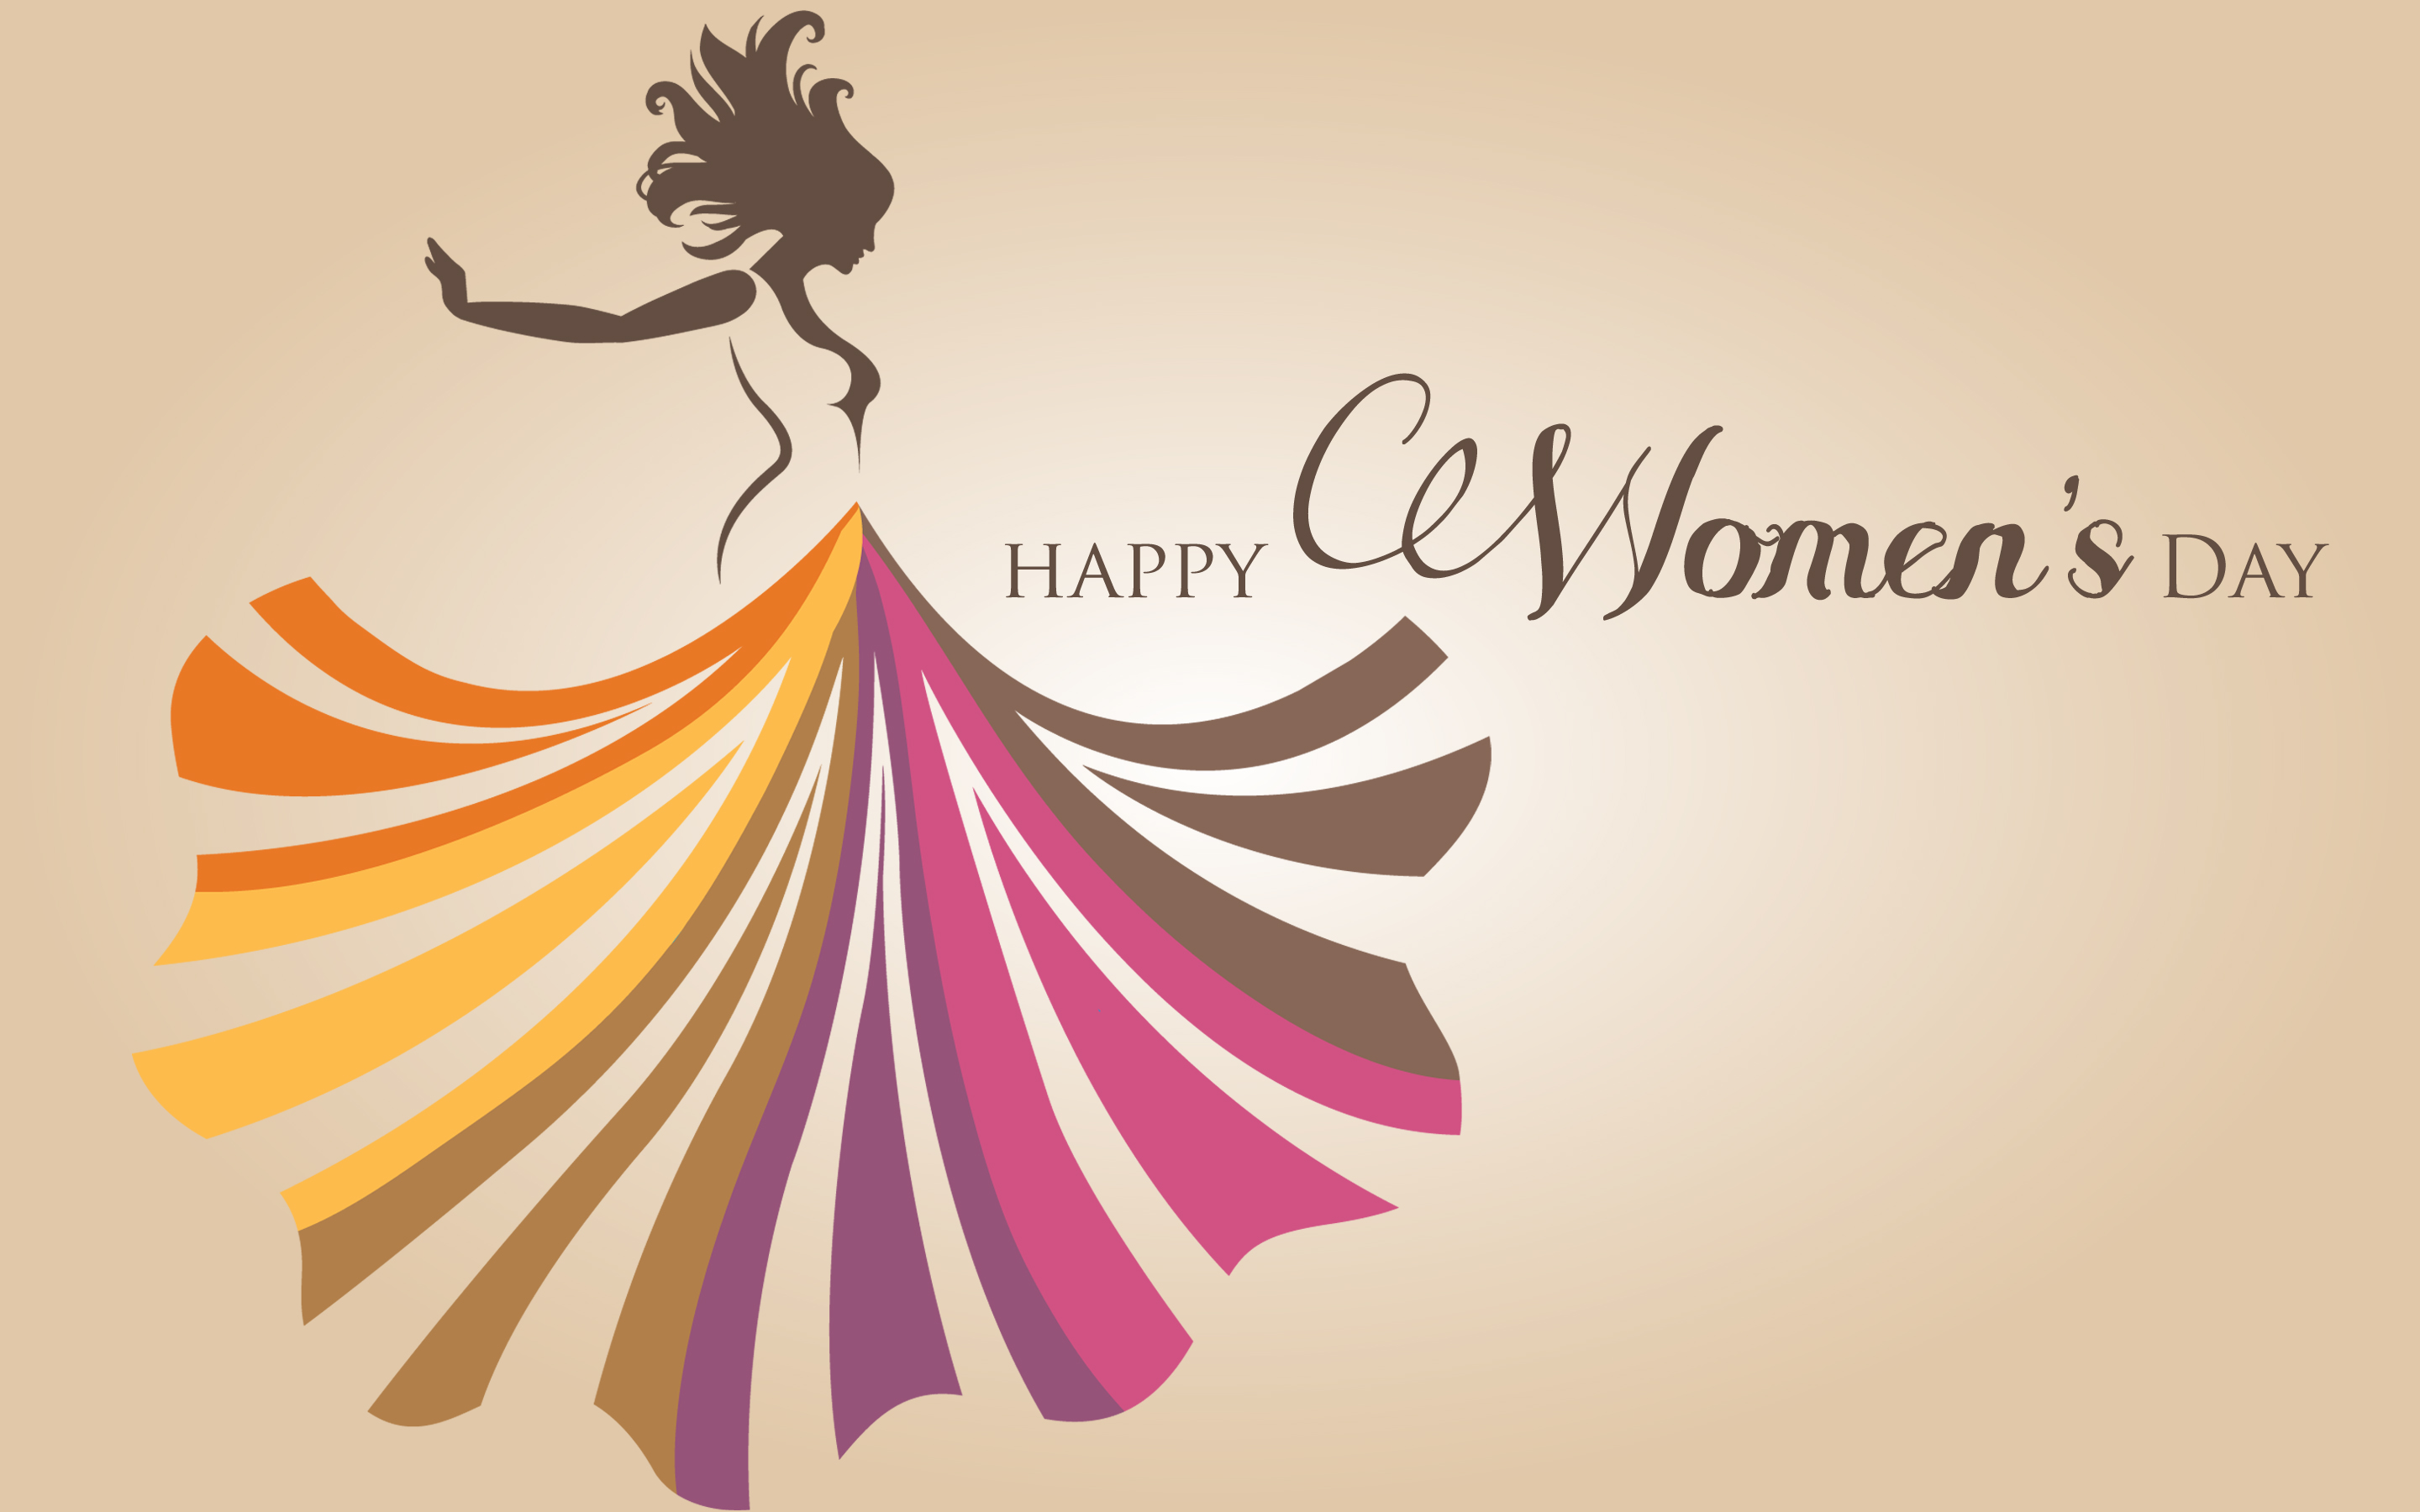 happy-international-womens-day-2016-hd-wallpapers